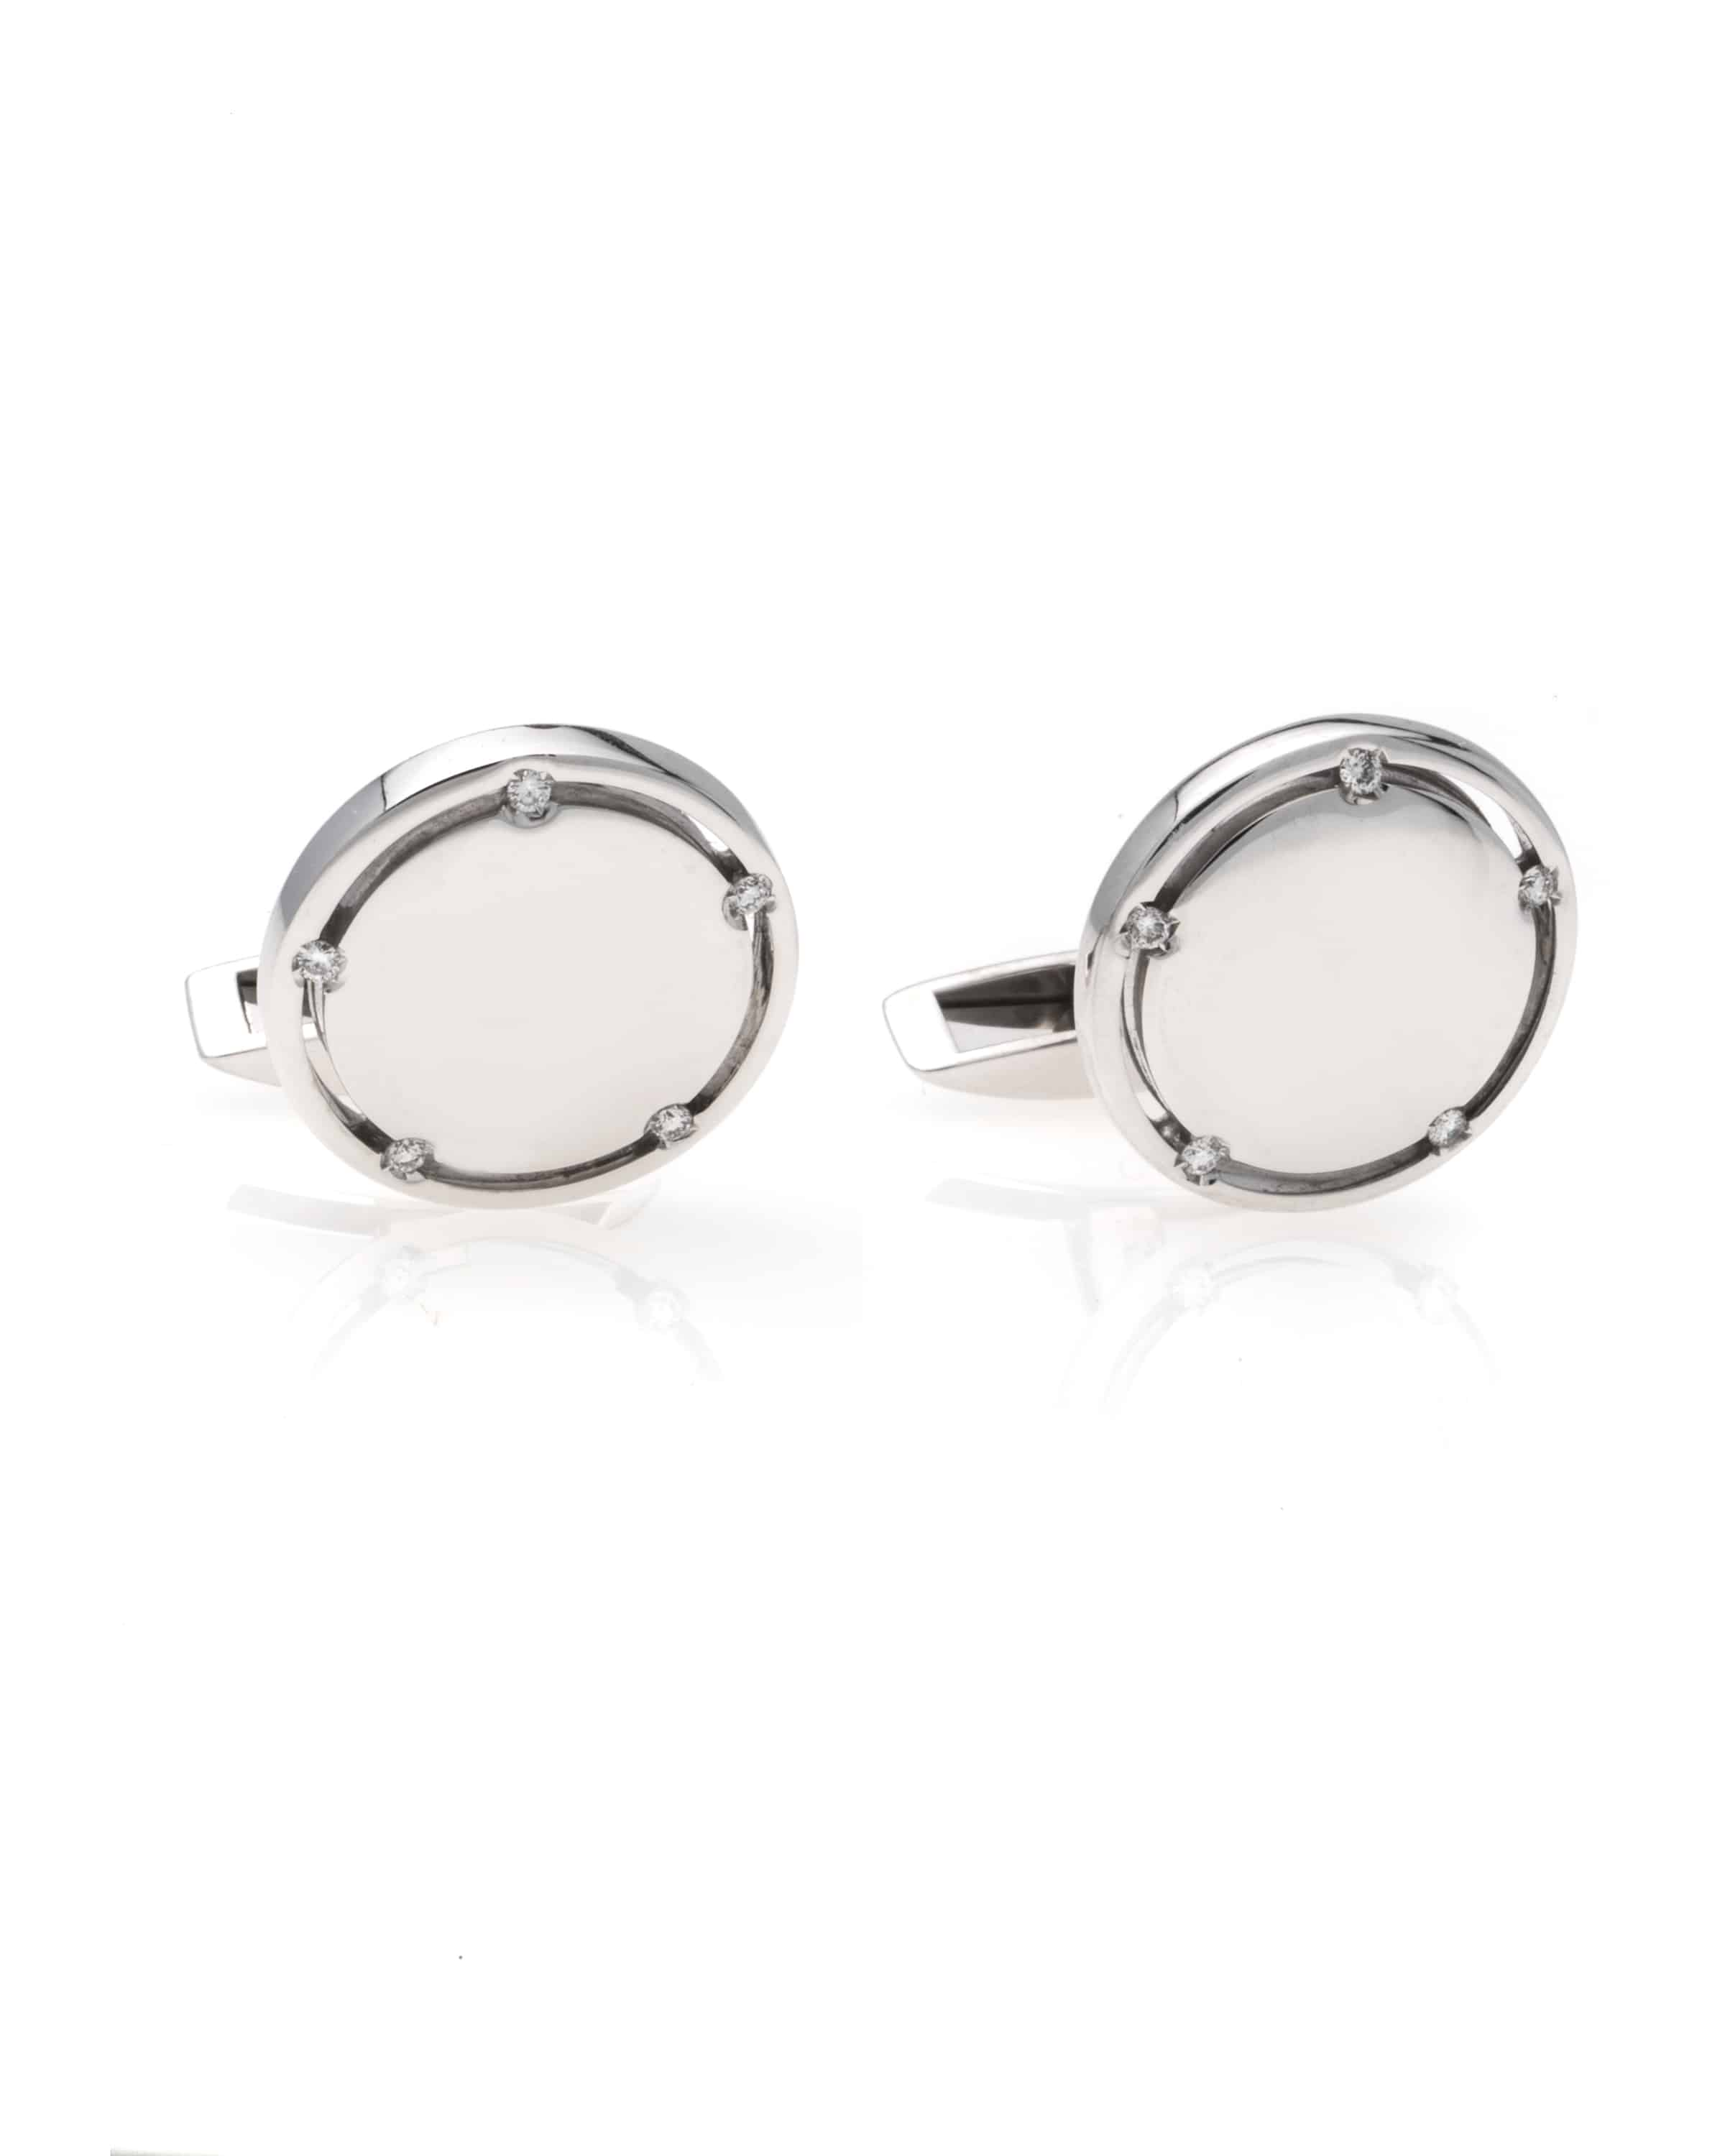 Damiani 18k White Gold And Stainless Steel With Diamond Cufflinks 20012937